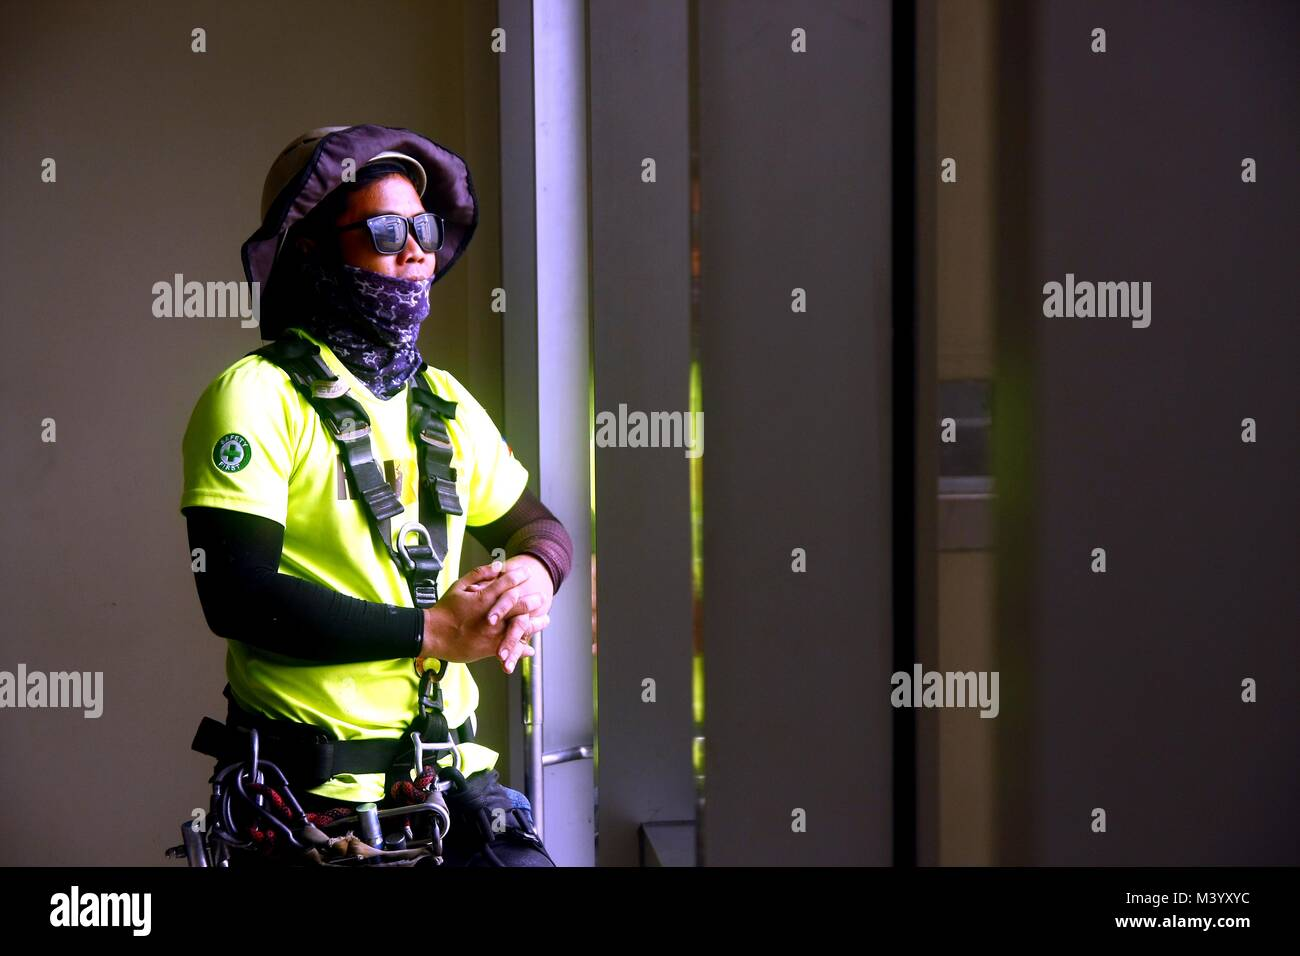 PASIG CITY, PHILIPPINES - FEBRUARY 7, 2018: A professional window cleaner takes a break and looks out the window - Stock Image